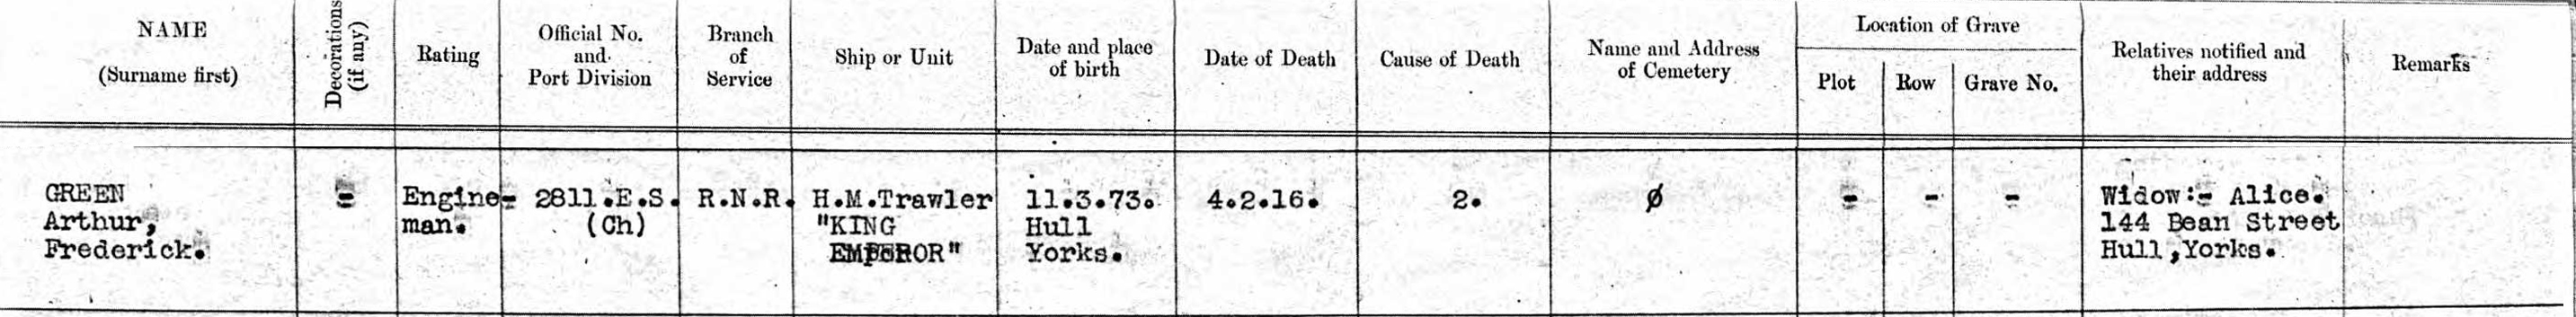 Arthur Fredrick Green death record 1916 - cropped.jpg